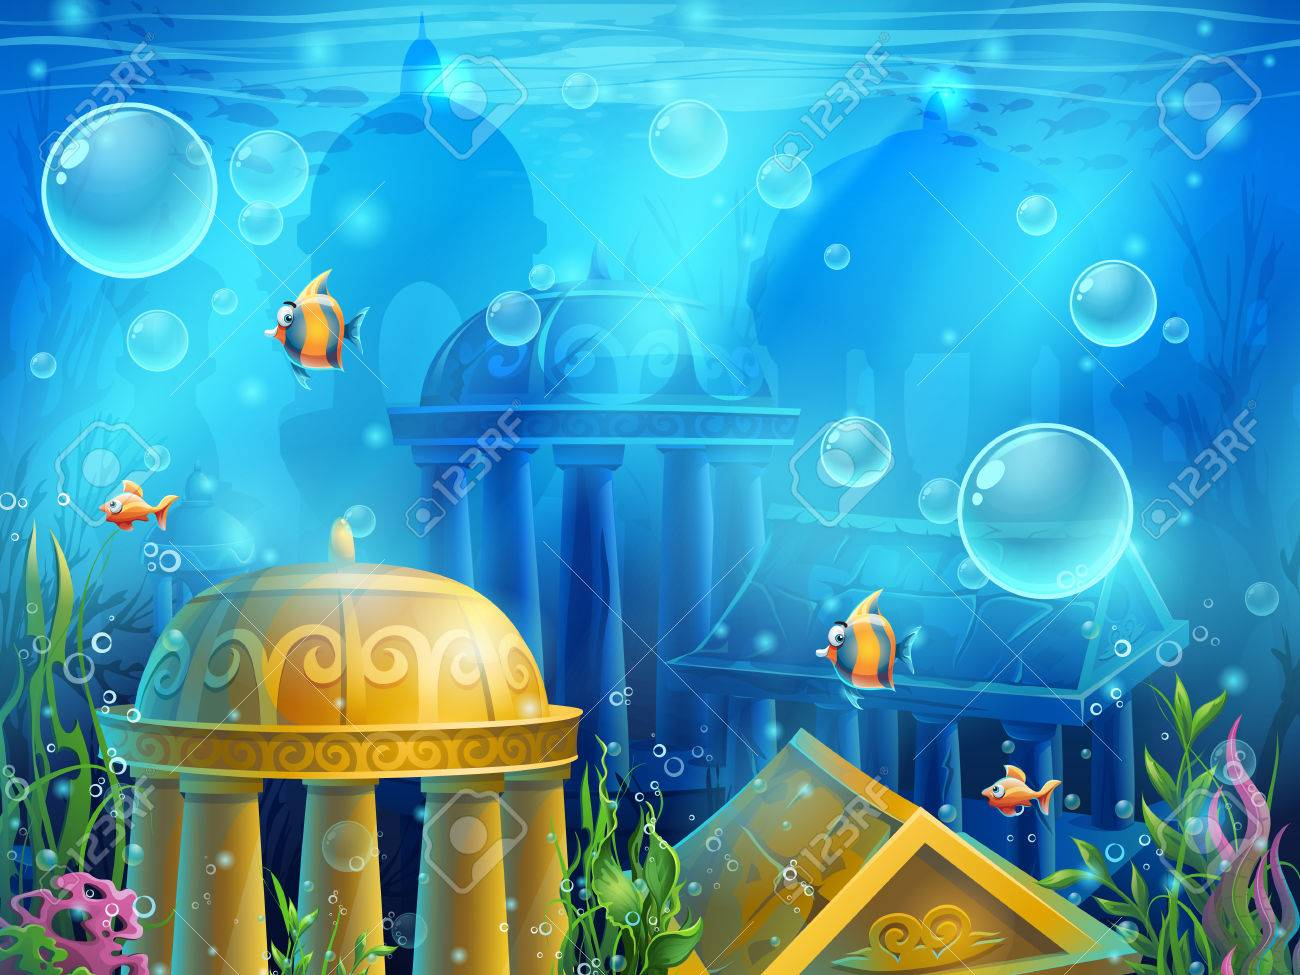 Atlantis ruins - background illustration screen to the computer game. Bright background image to create original video or web games, graphic design, screen savers. - 56046706